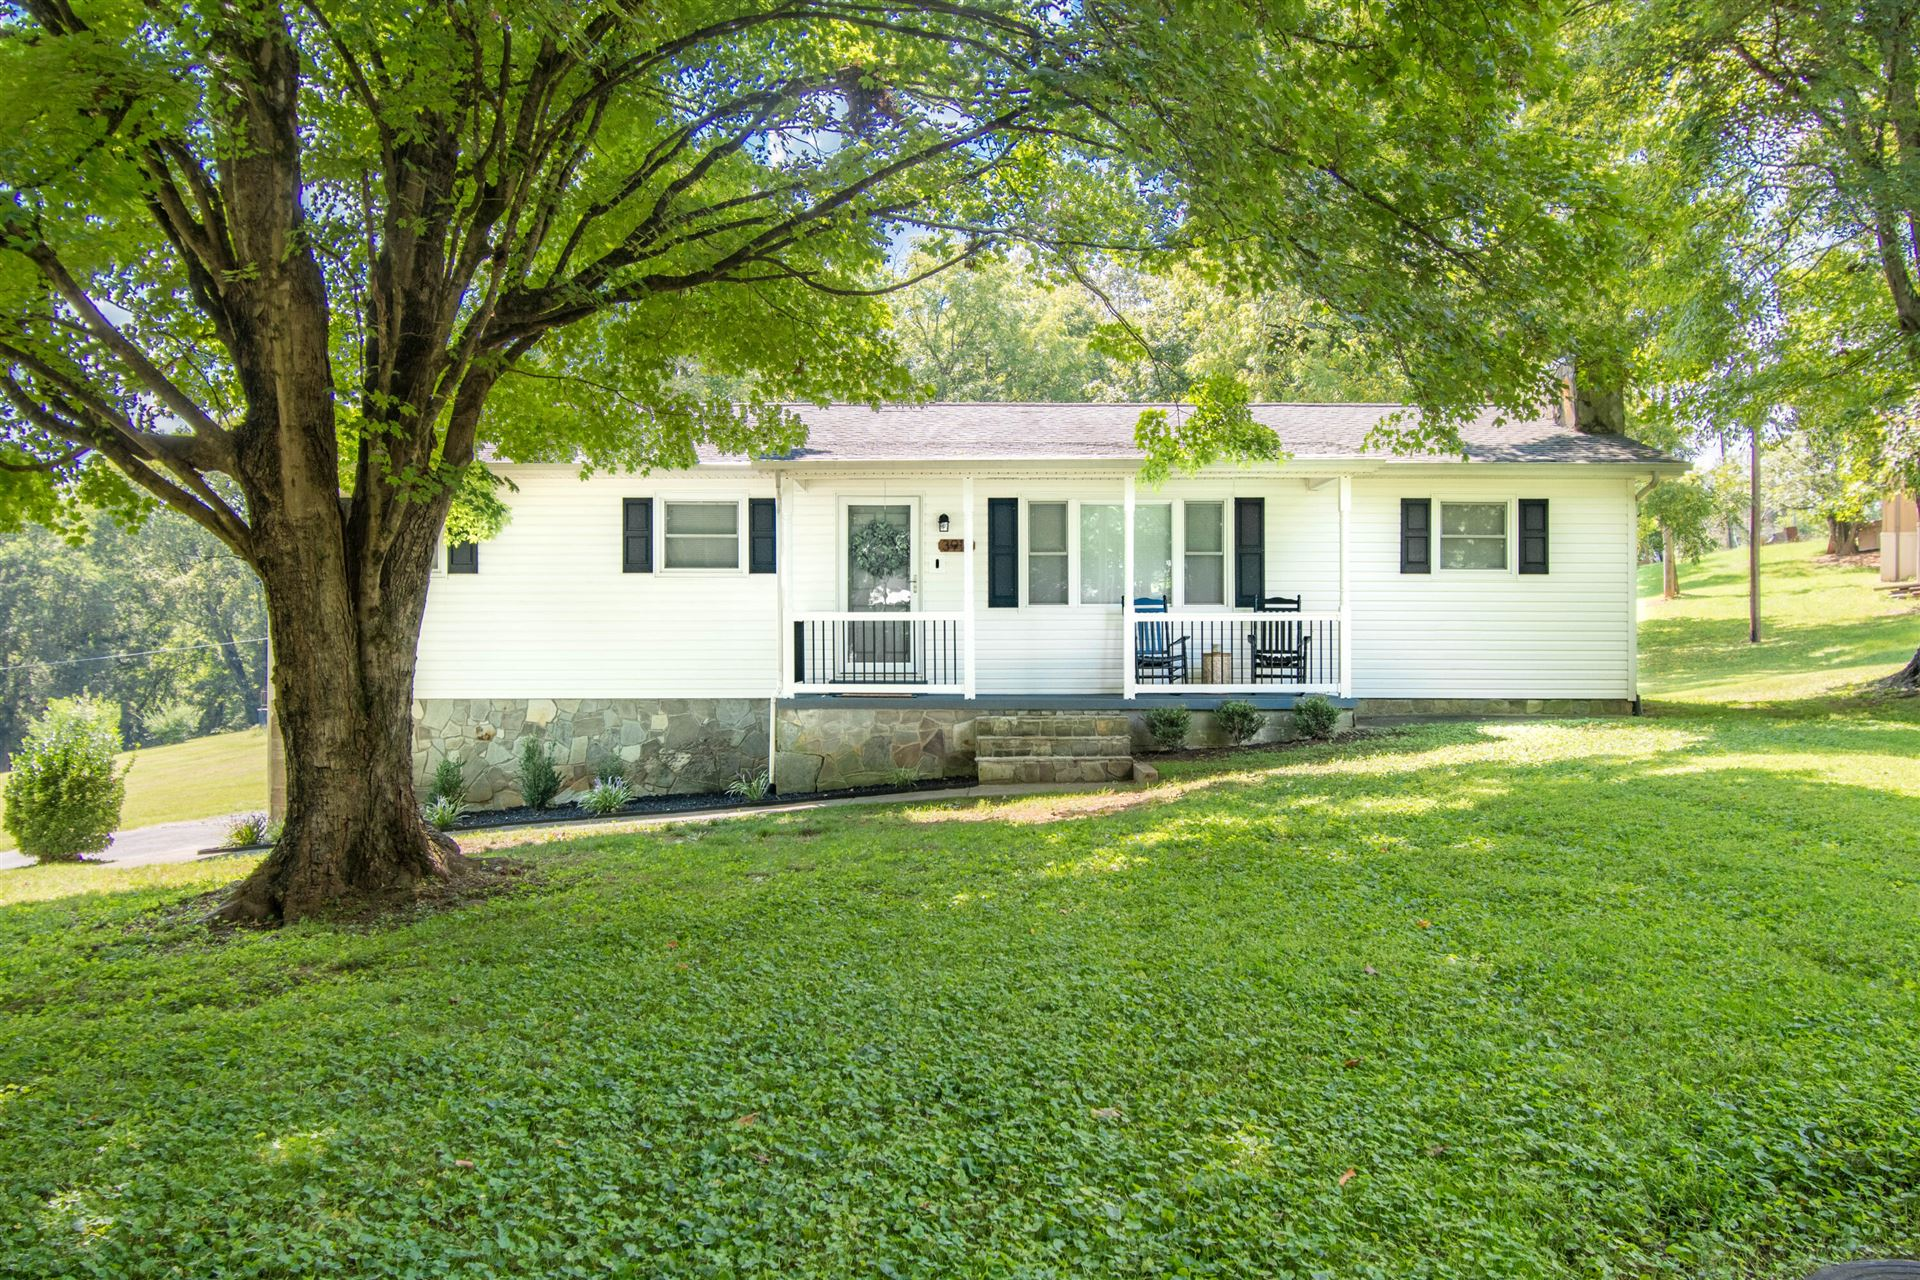 Photo of 3917 Bud Mcmillan Rd, Knoxville, TN 37924 (MLS # 1167704)